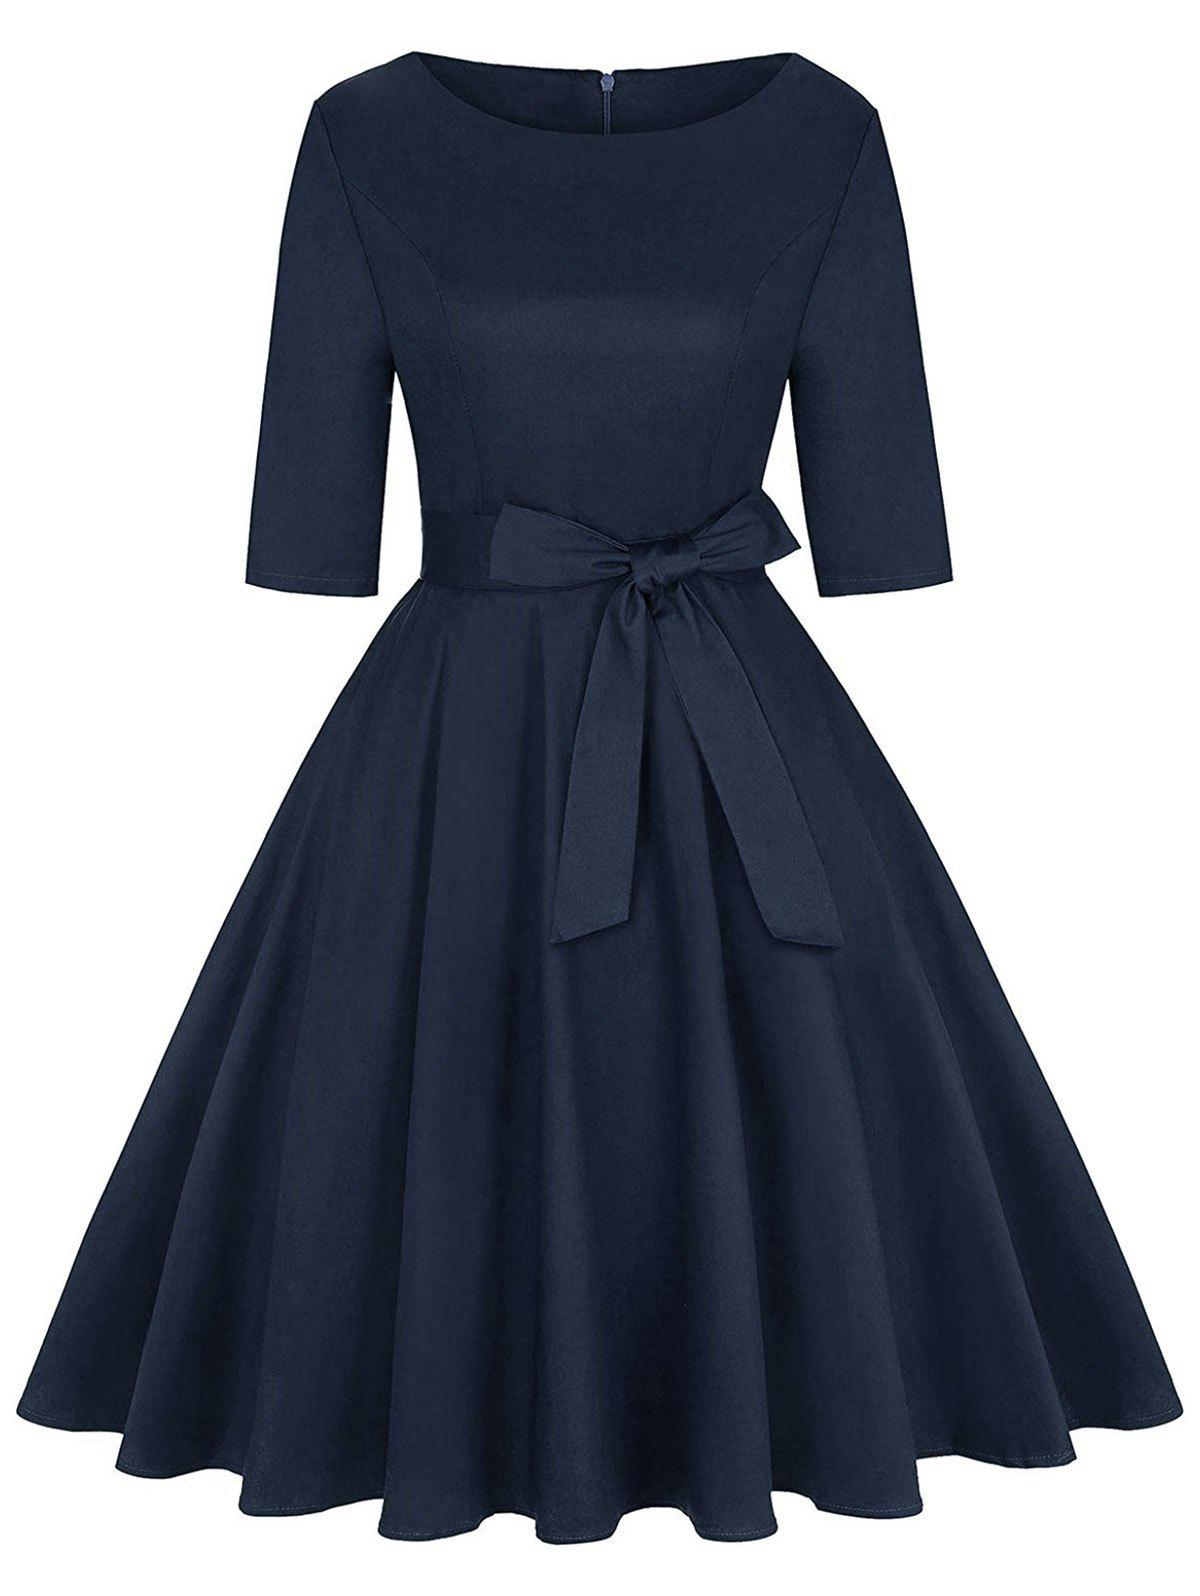 Belted Knee Length Party Dress - DEEP BLUE M